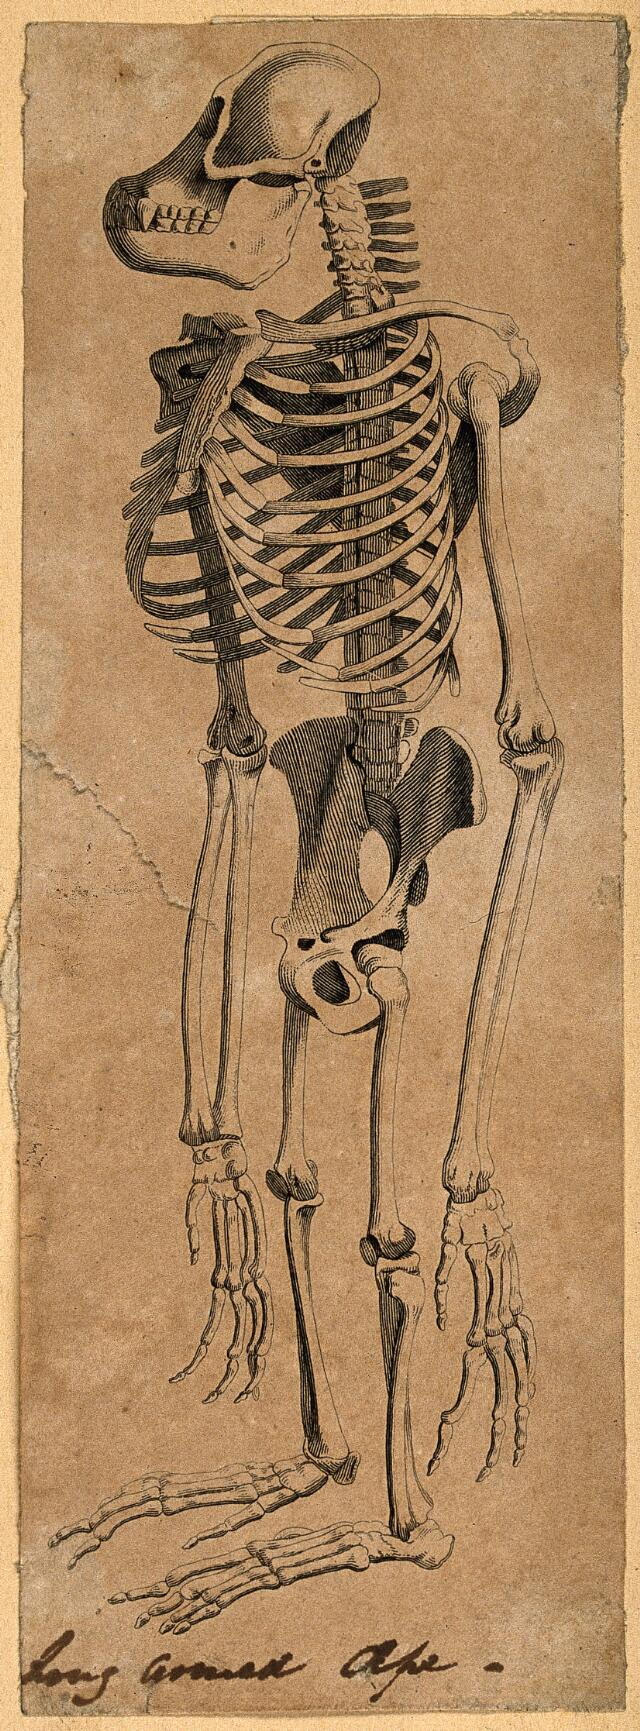 Collections search: HUMAN SKELETON | Wellcome Collection